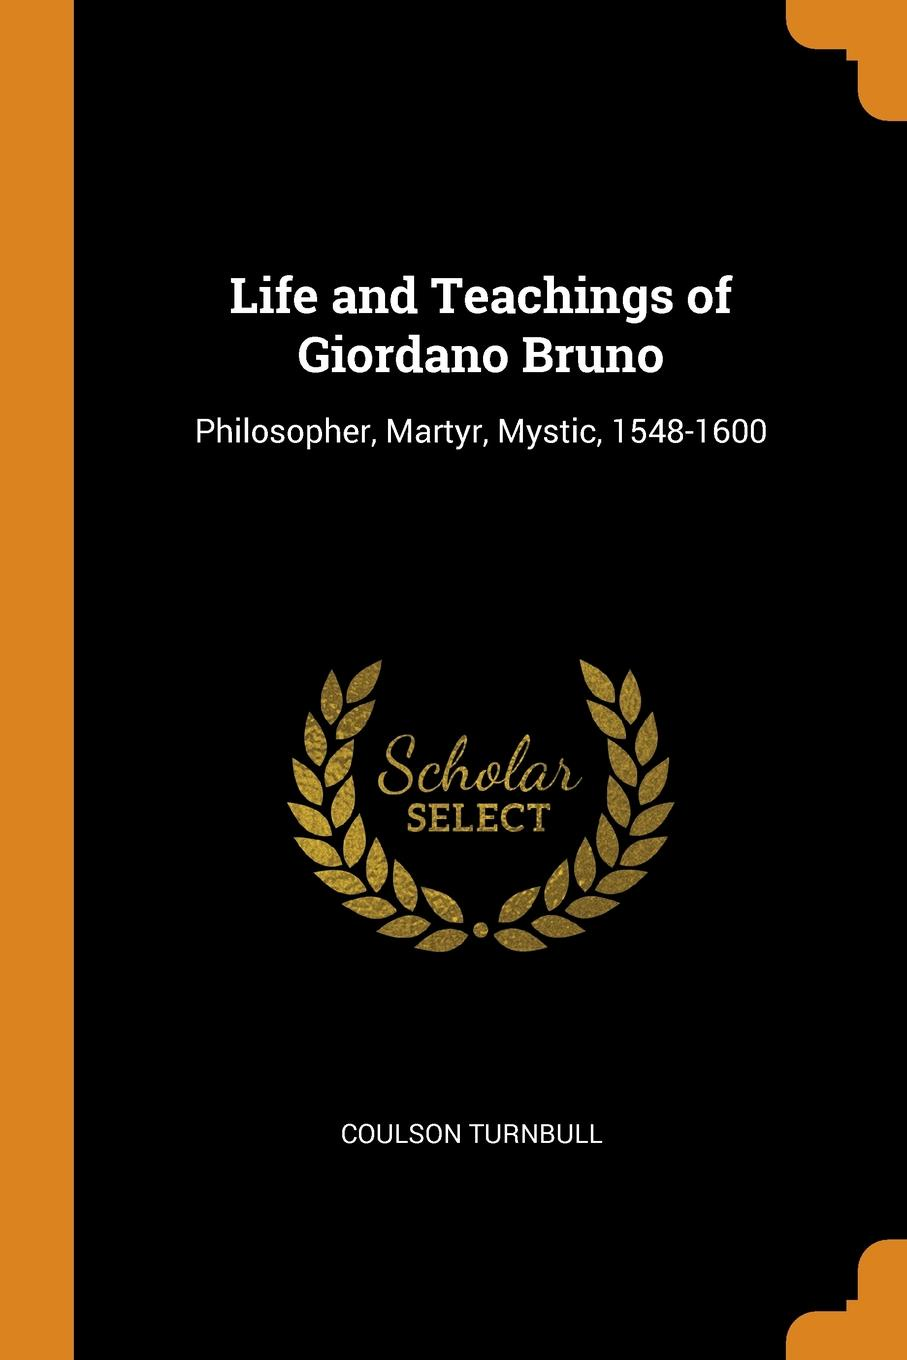 Coulson Turnbull Life and Teachings of Giordano Bruno. Philosopher, Martyr, Mystic, 1548-1600